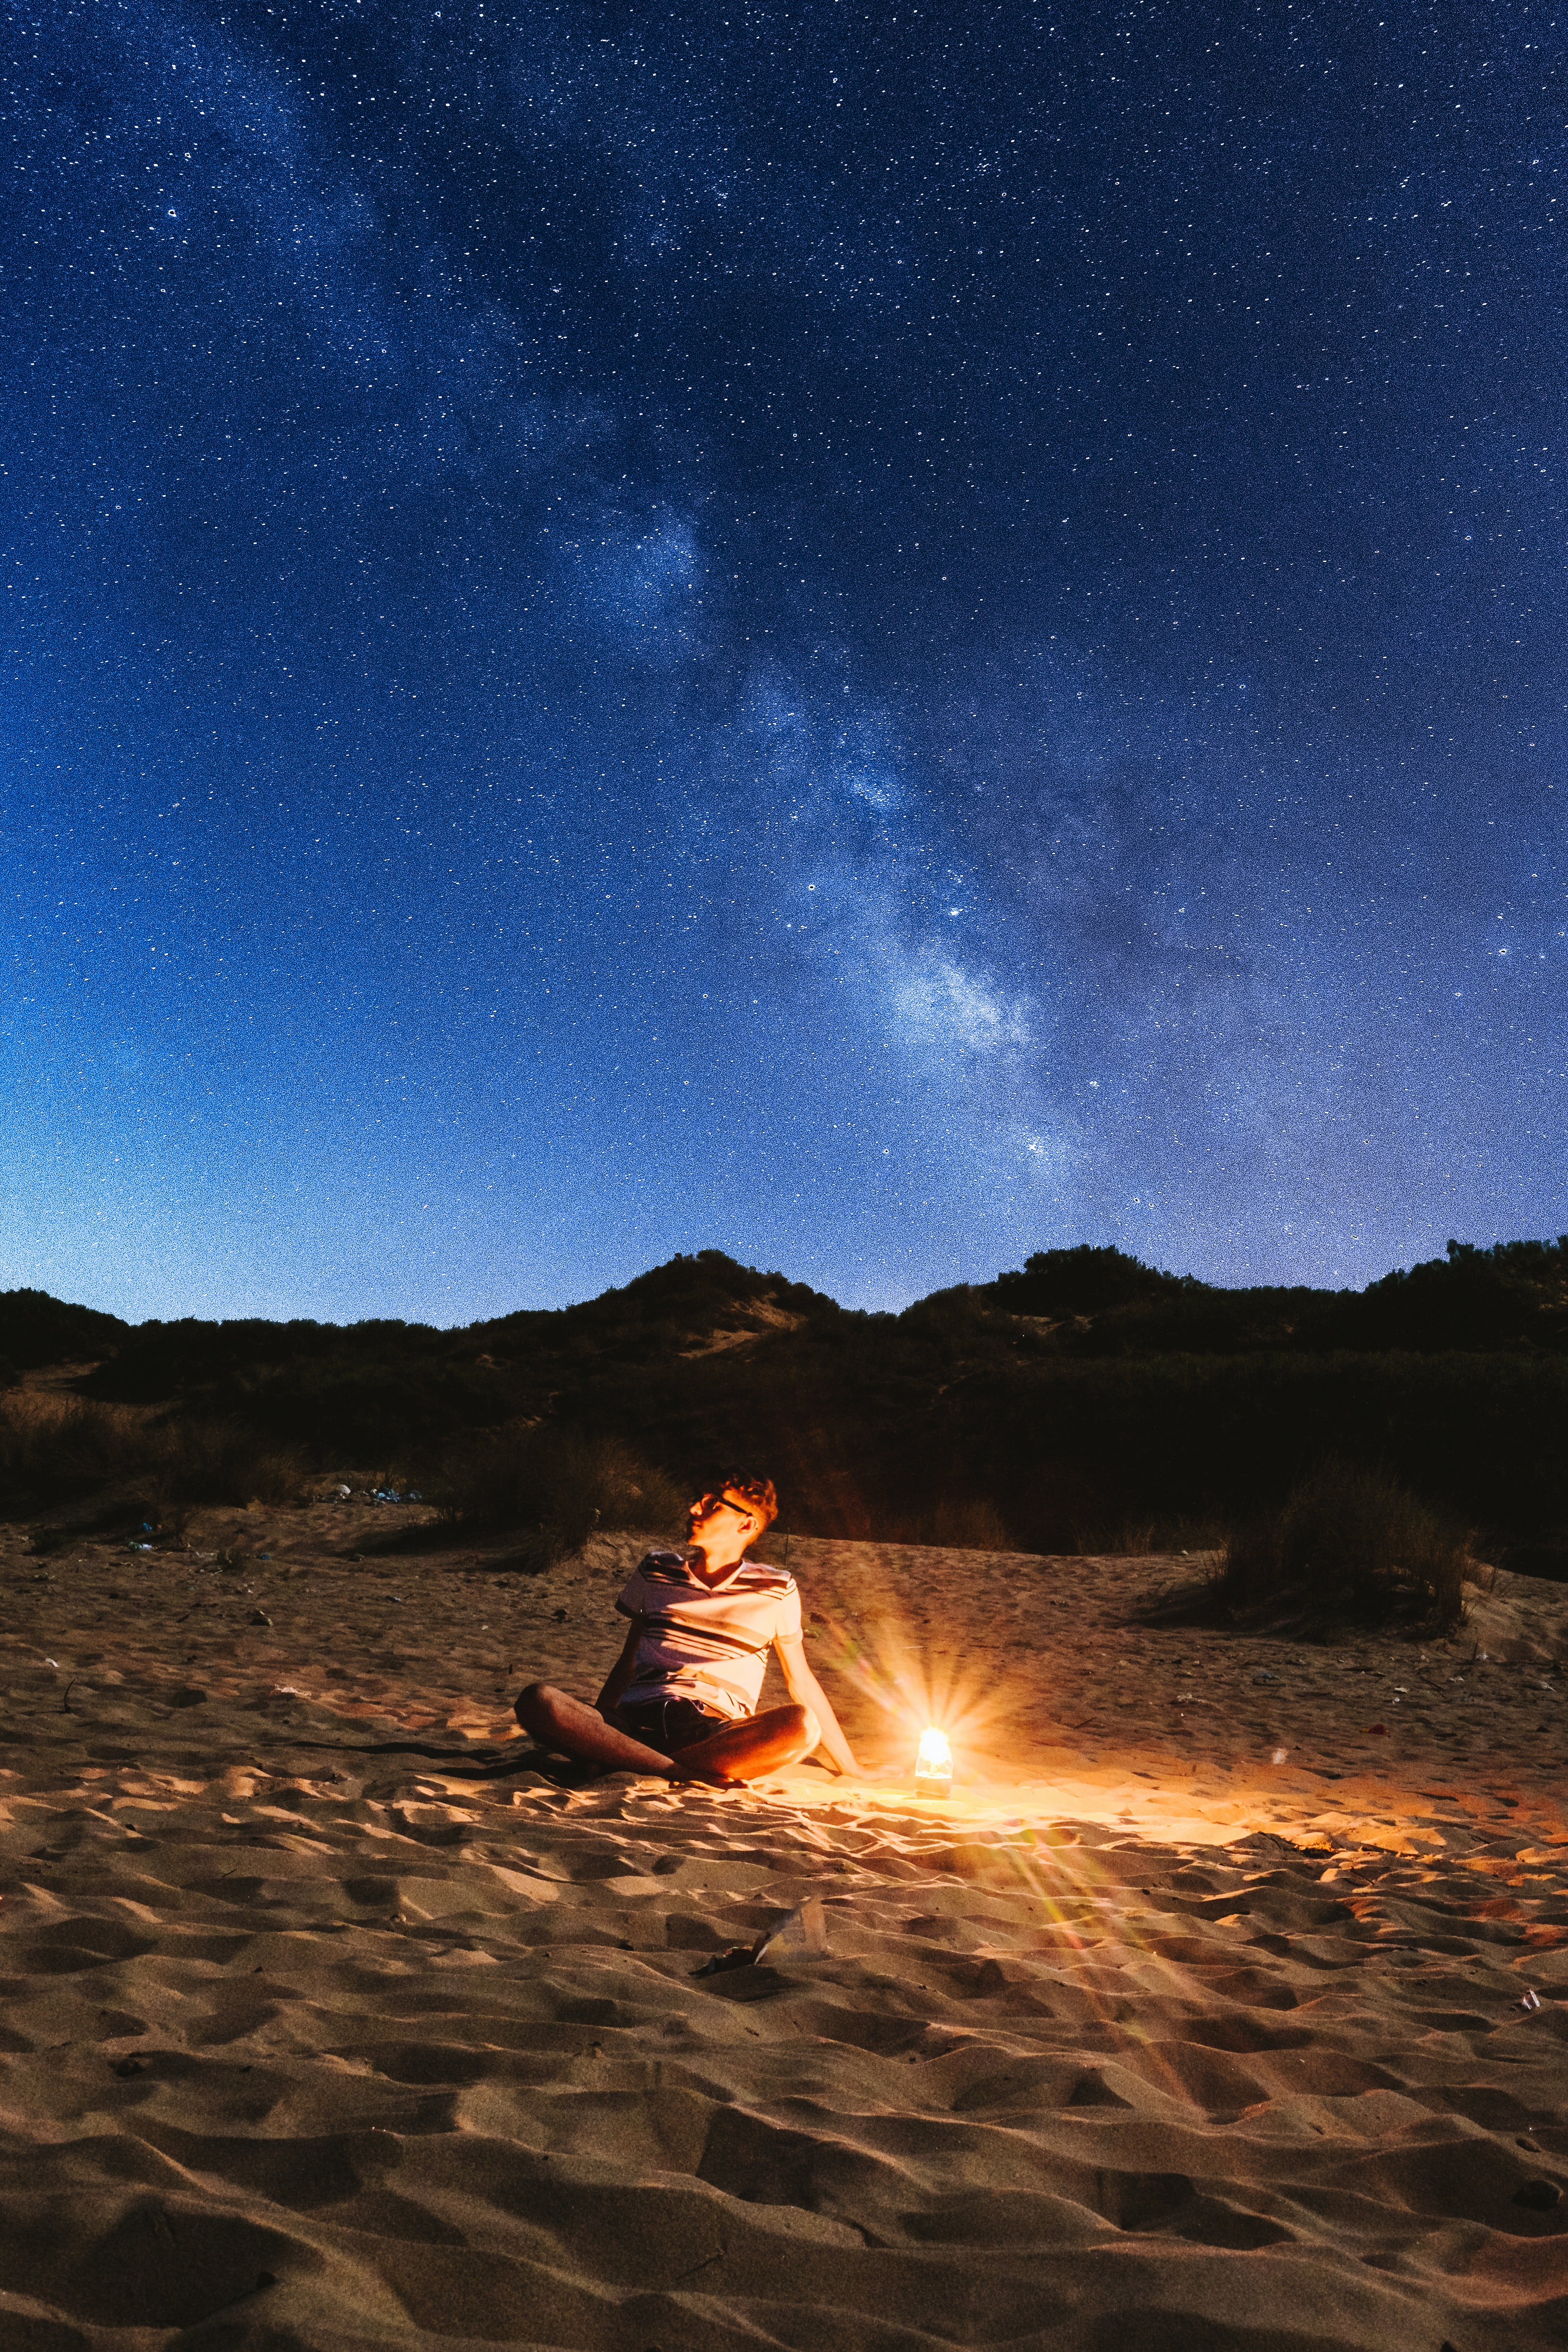 sitting man near lamp looking on the sky with milky way